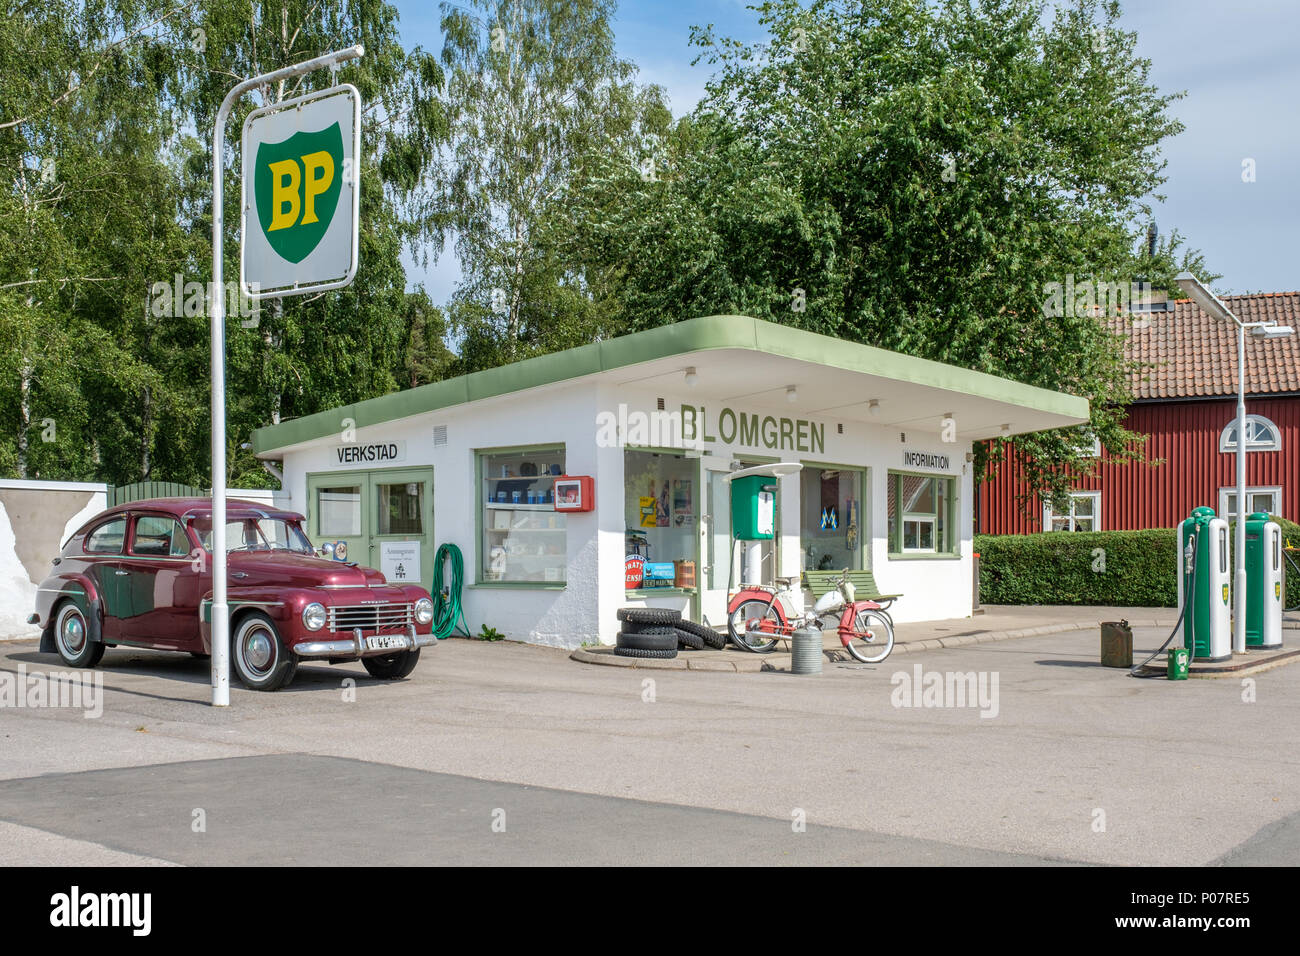 Vintage Petrol Station High Resolution Stock Photography and Images - Alamy